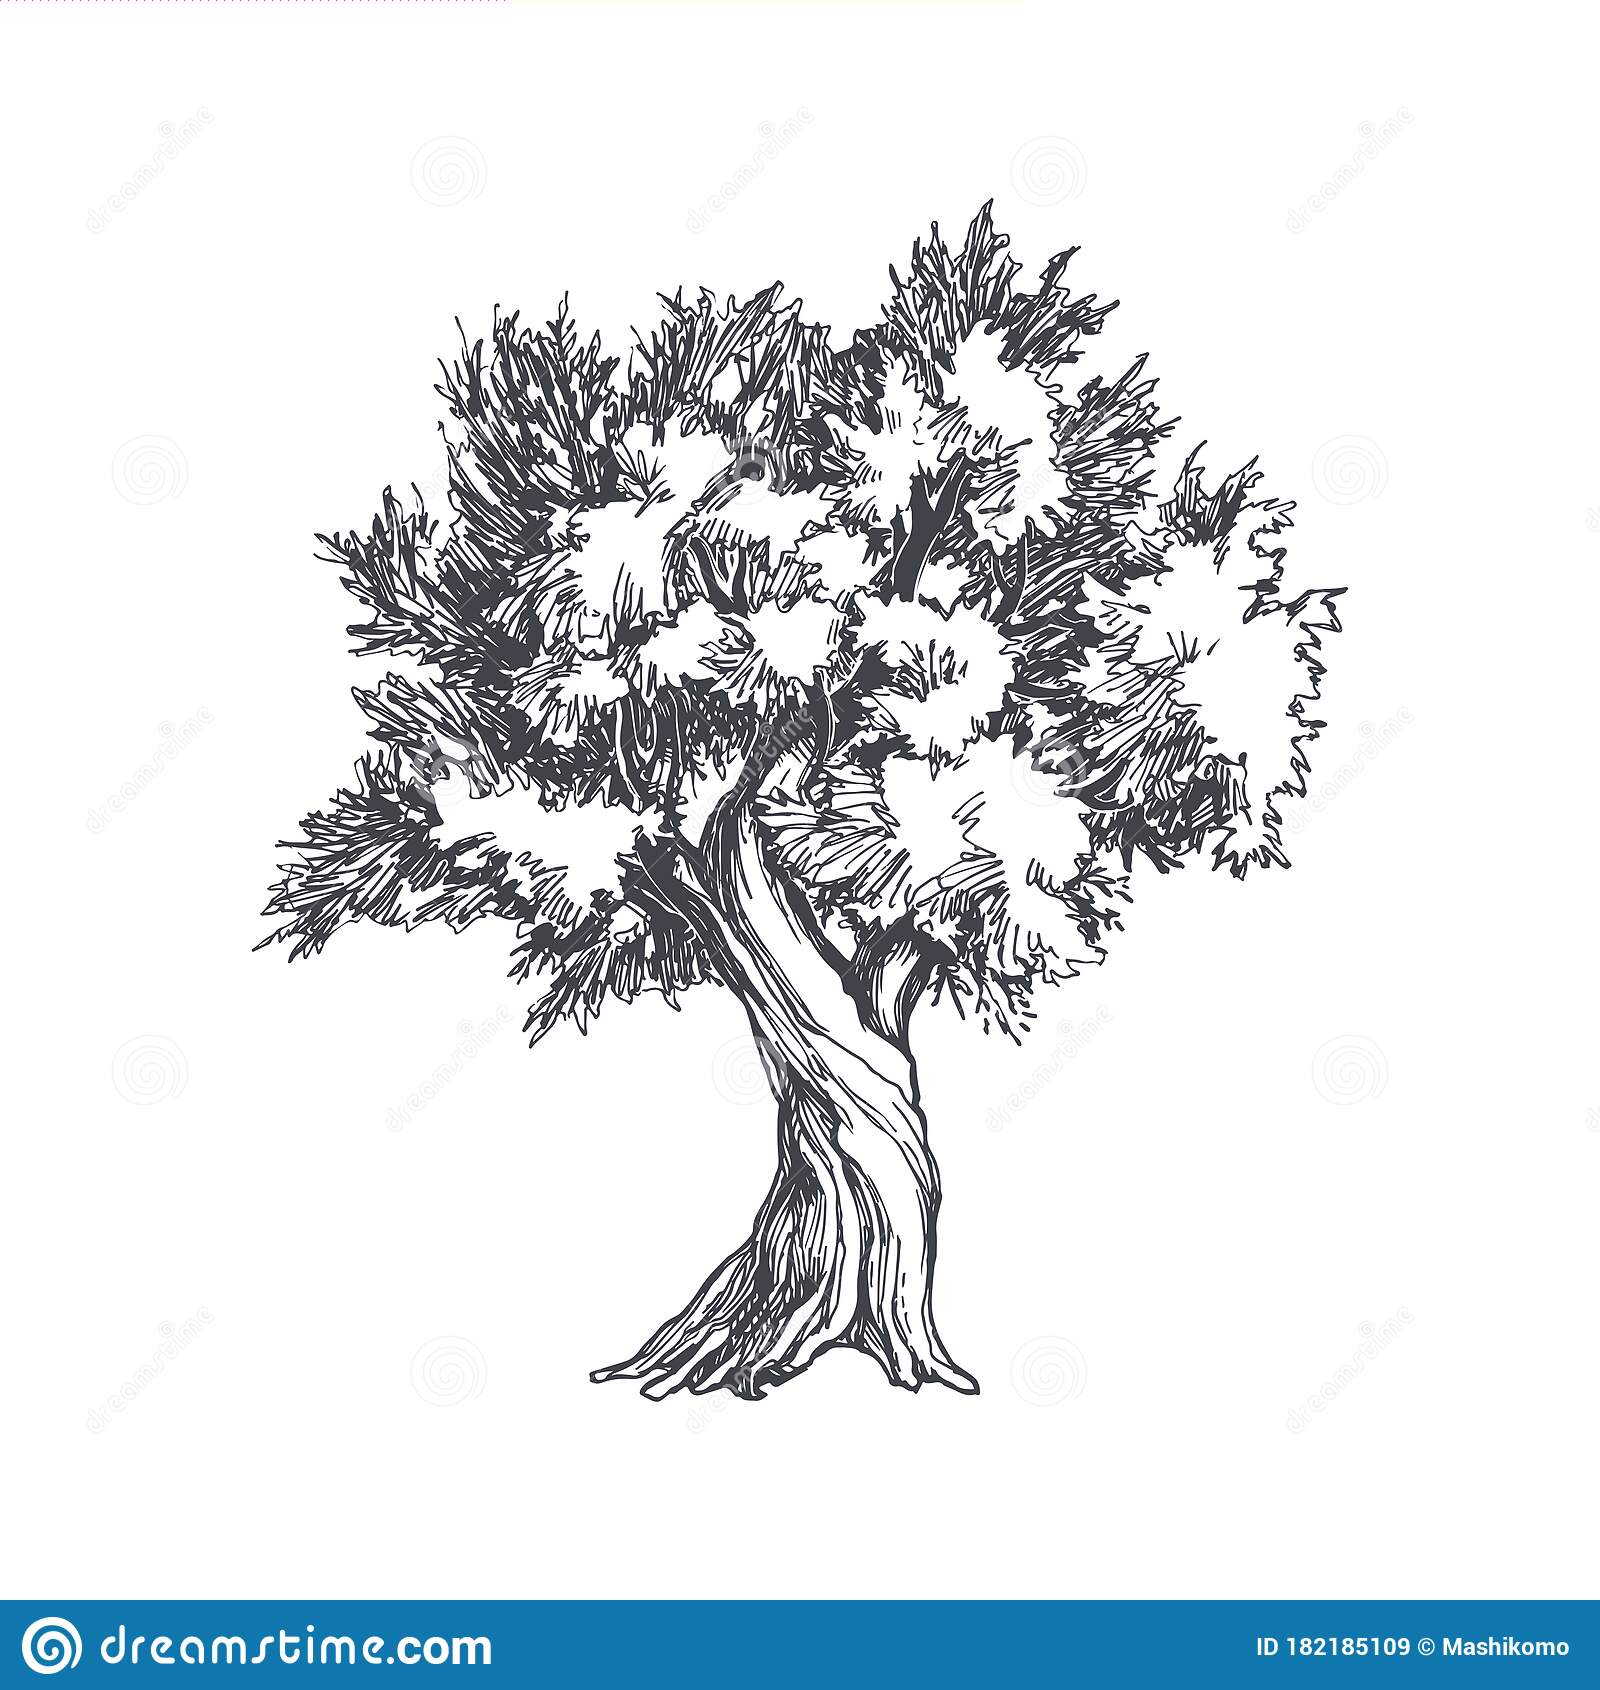 Vector Vintage Illustration Of Tree In Engraving Style Hand Drawn Botanical Sketch With Olive Plant Isolated On White Background Stock Vector Illustration Of Nature Drawn 182185109